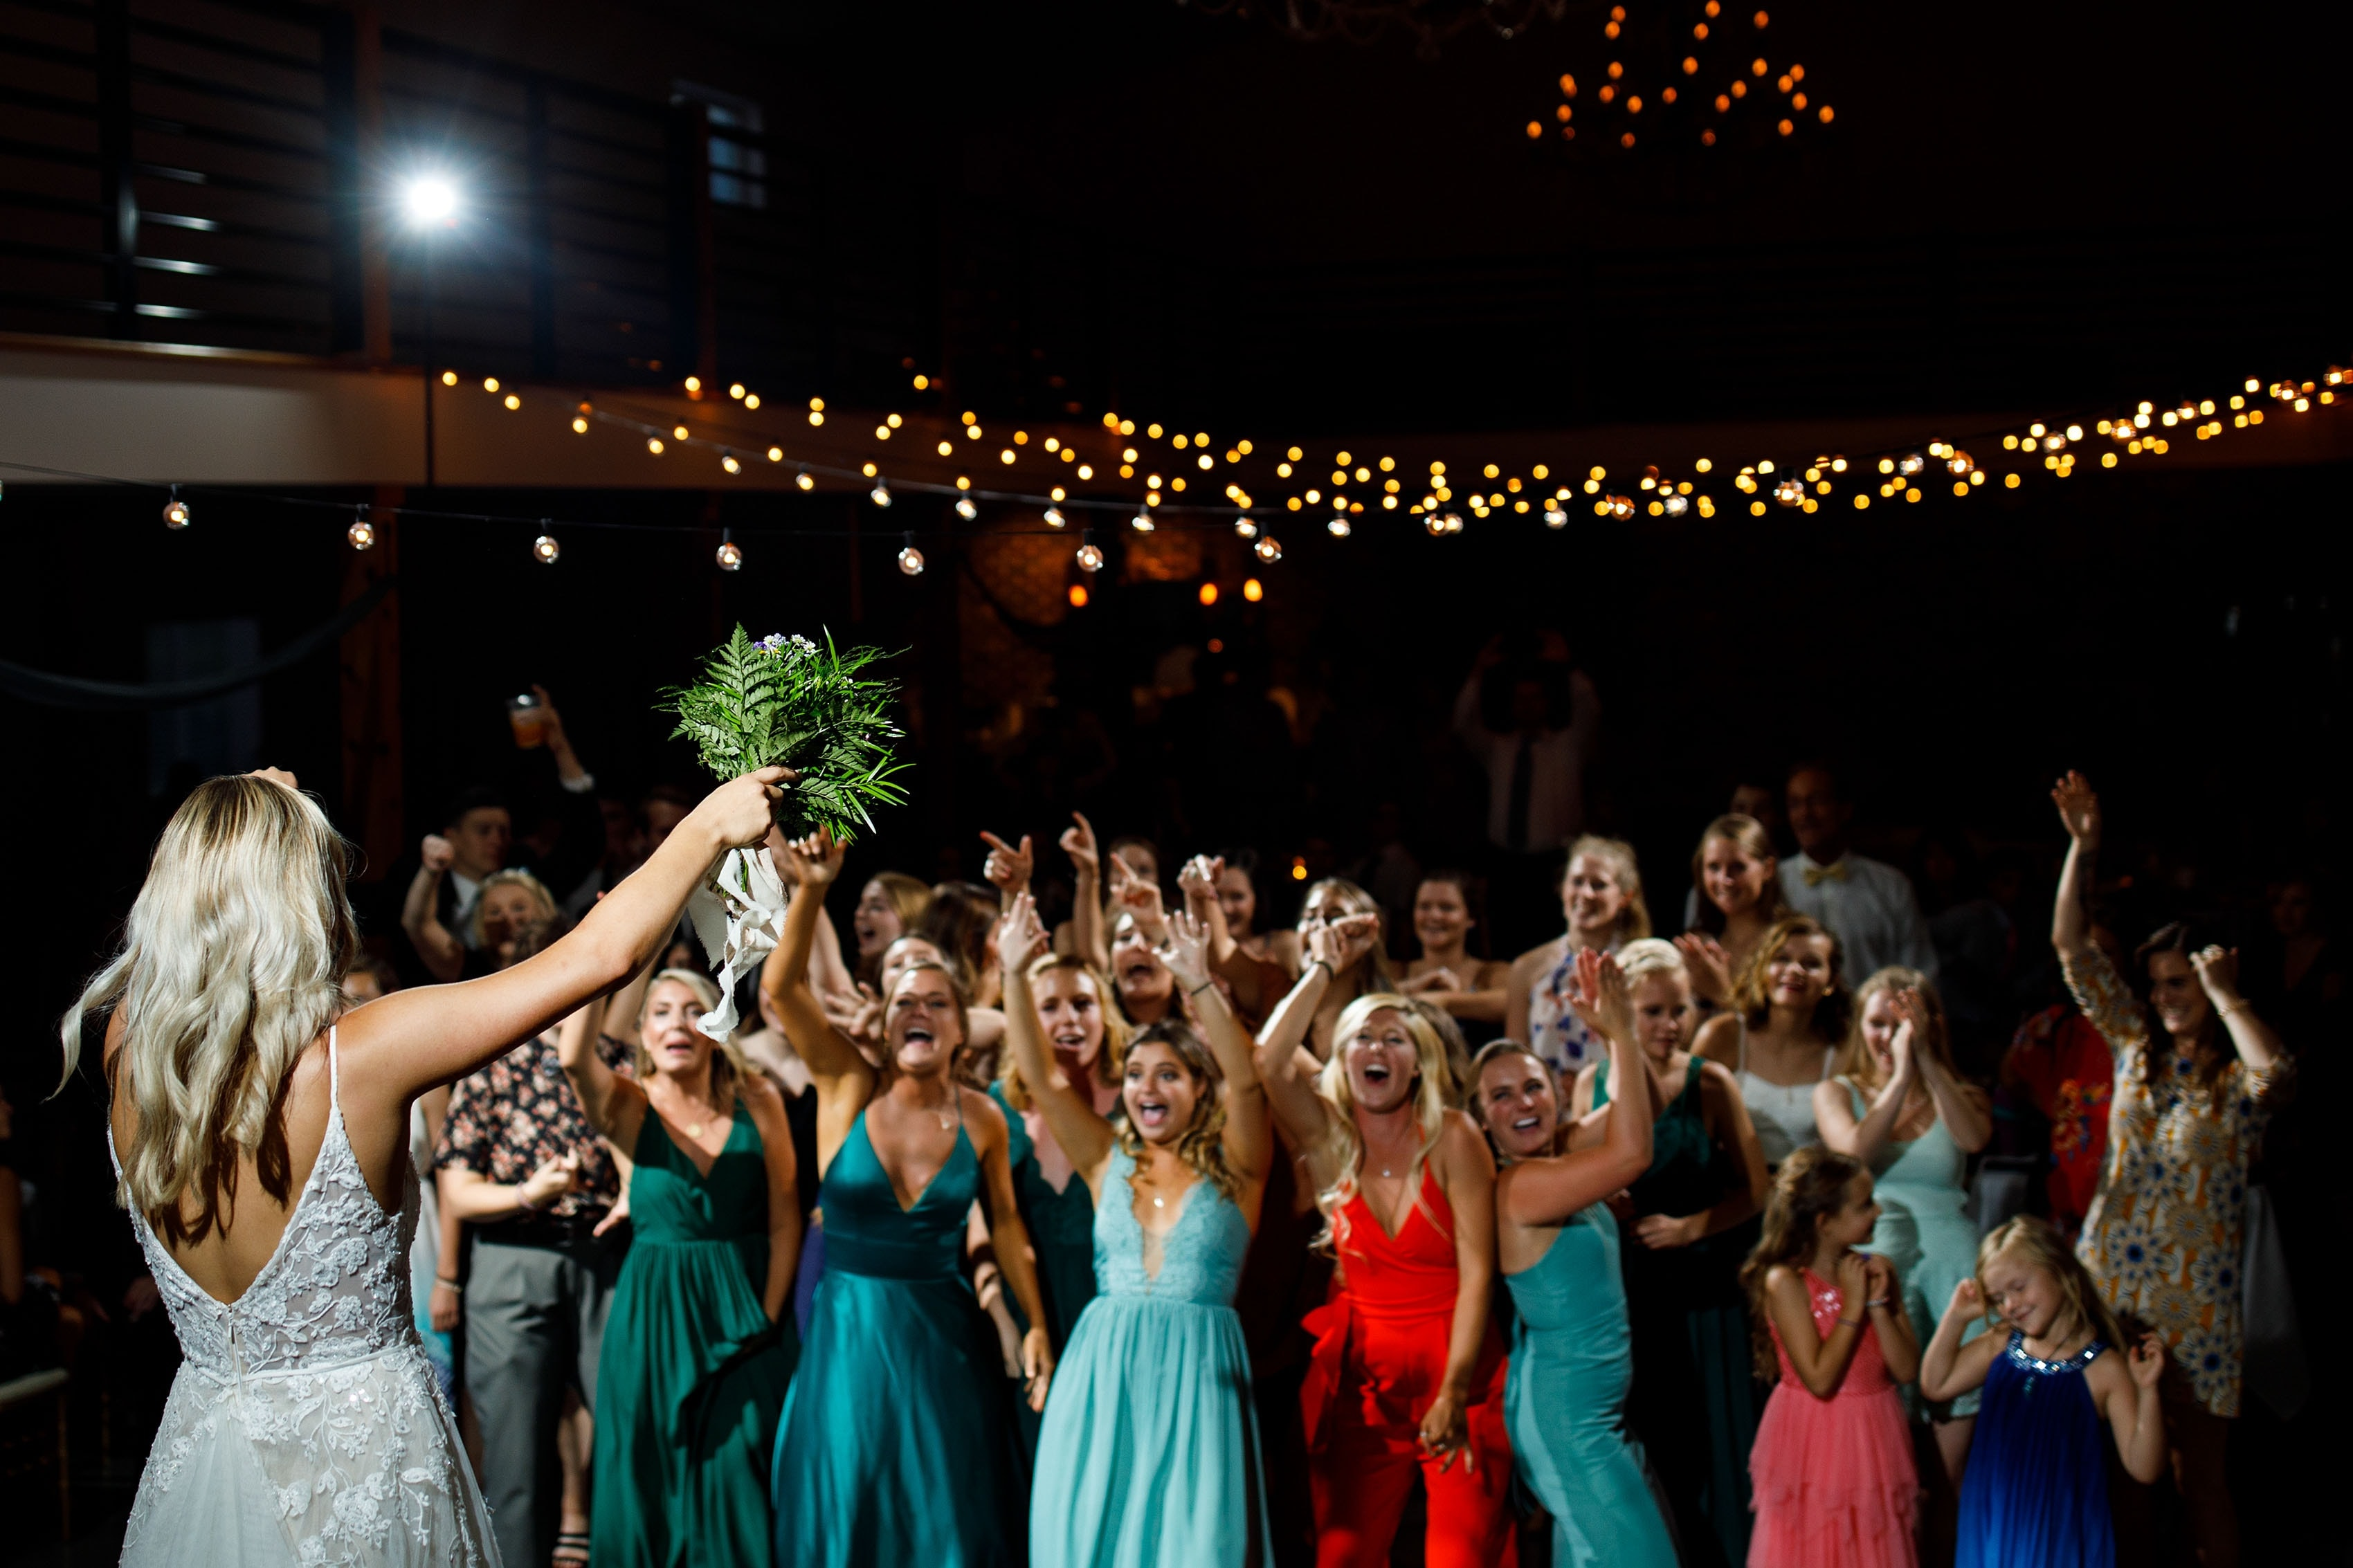 A bride gets her friends excited before throwing the boquet